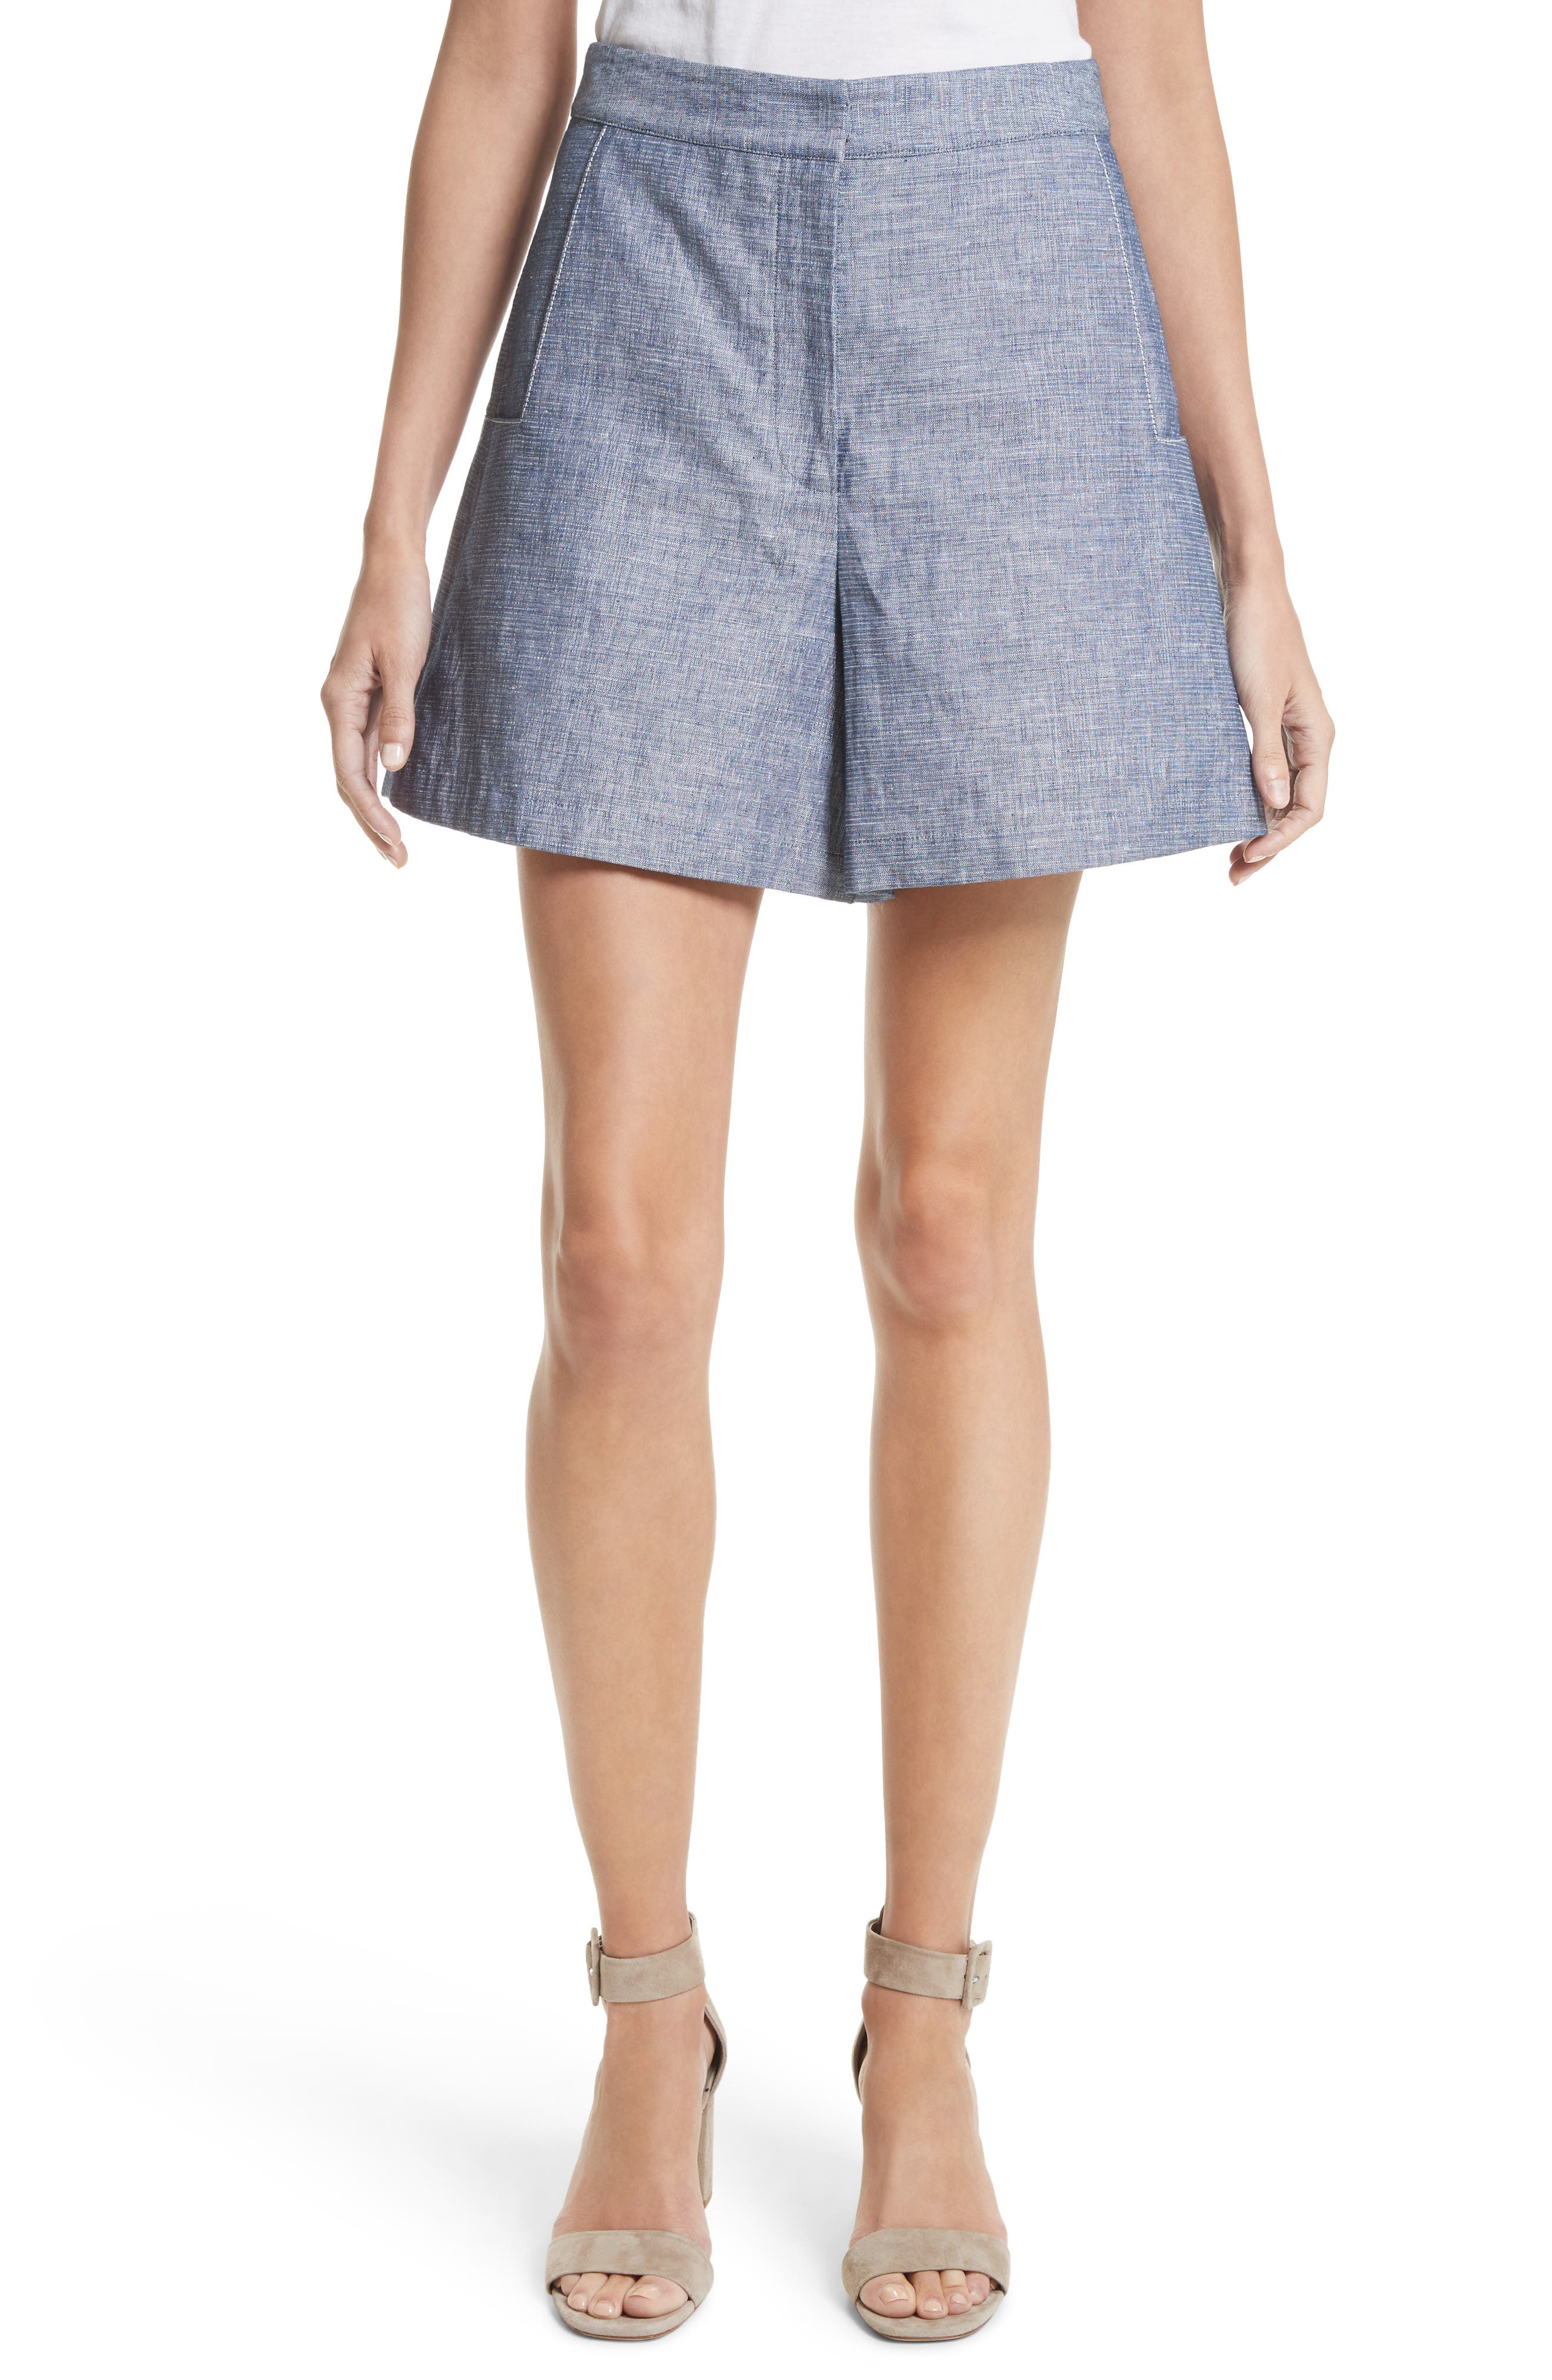 GREY Jason Wu High Waist Double Face Denim Shorts